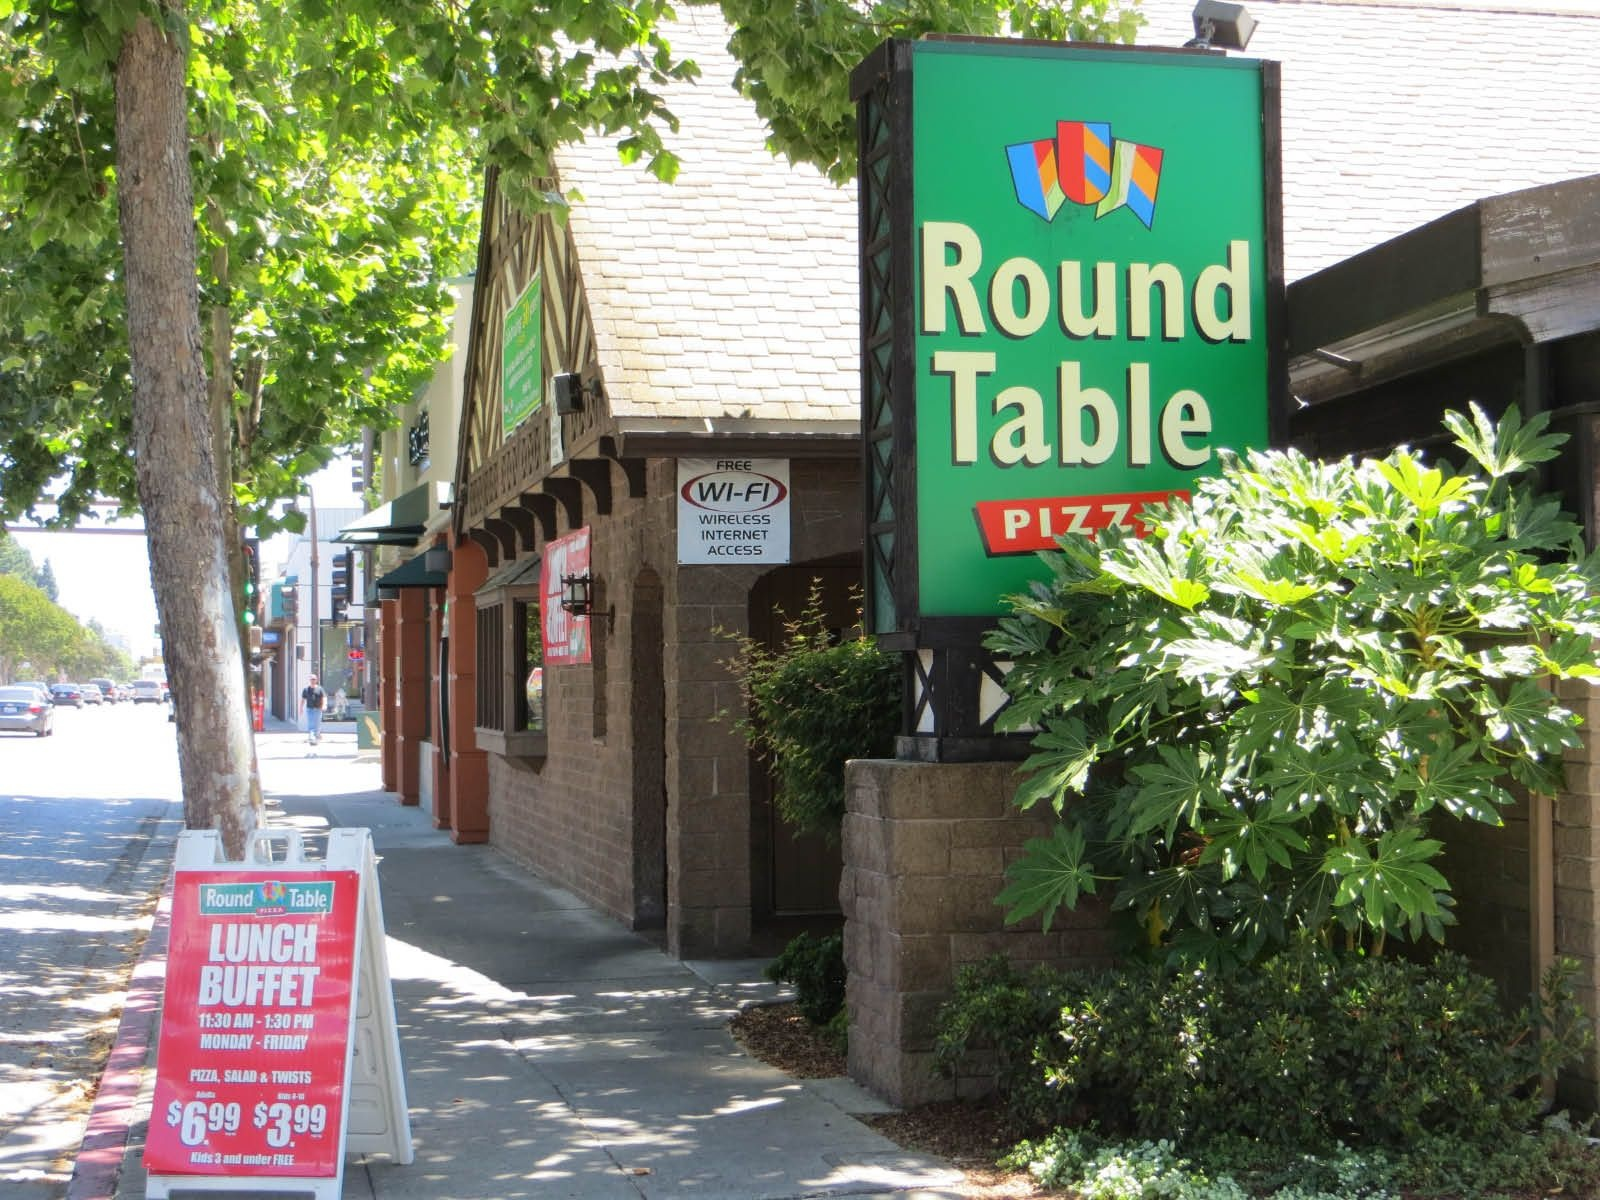 Get Coupons For The Very First Round Table Pizza Restaurant In Menlo - Free Printable Round Table Pizza Coupons